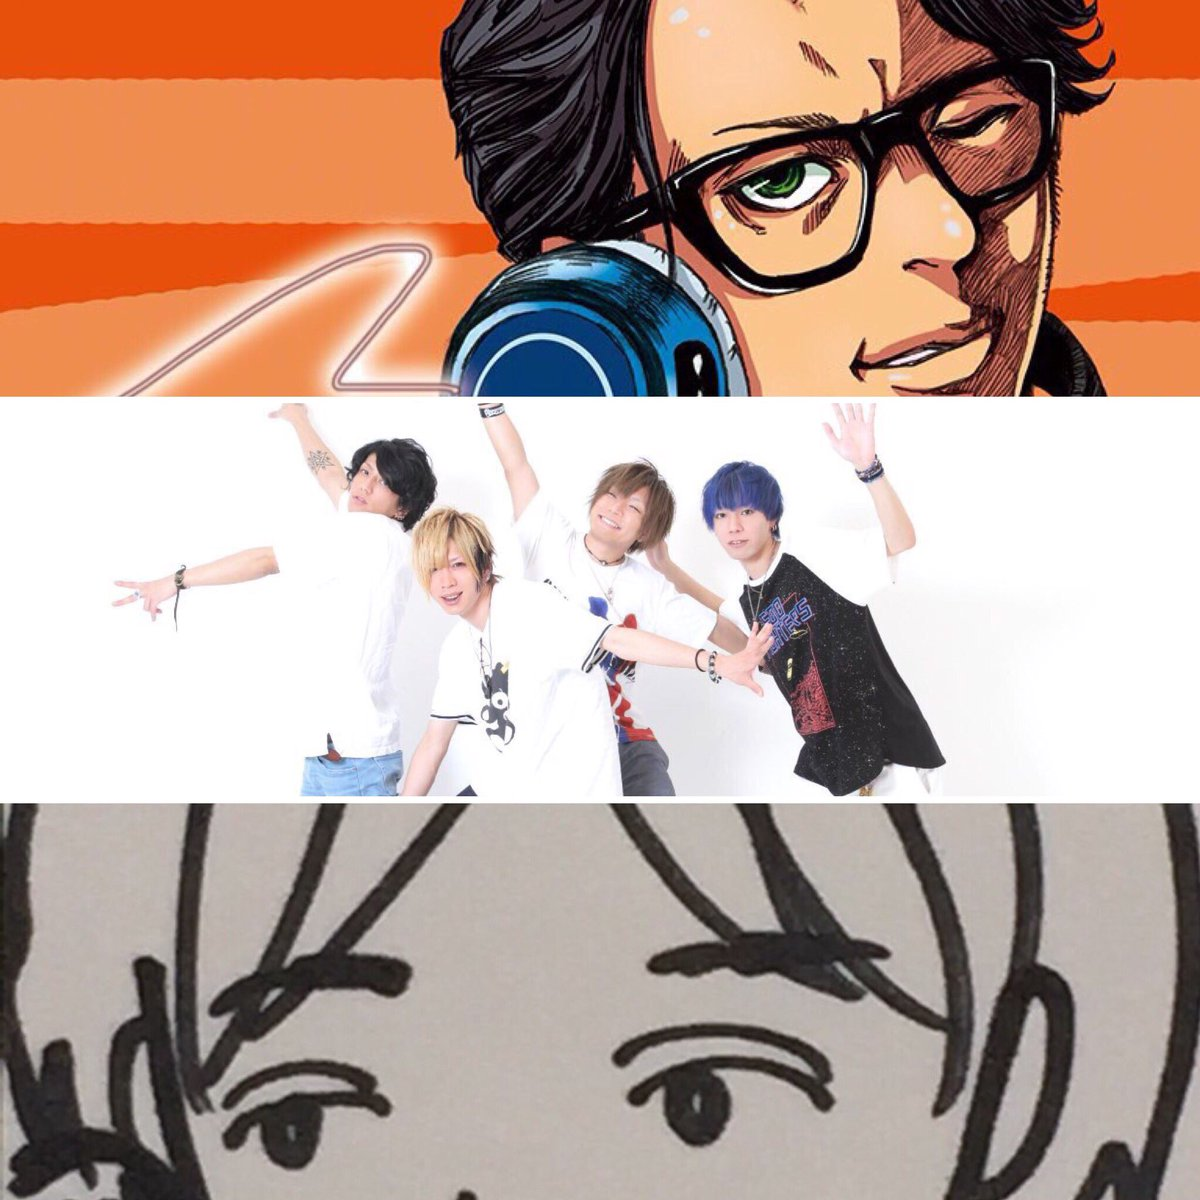 SHARE LOCK HOMES公式, DJ HACK info, はっくゝ∀・)ゞ and 7 others